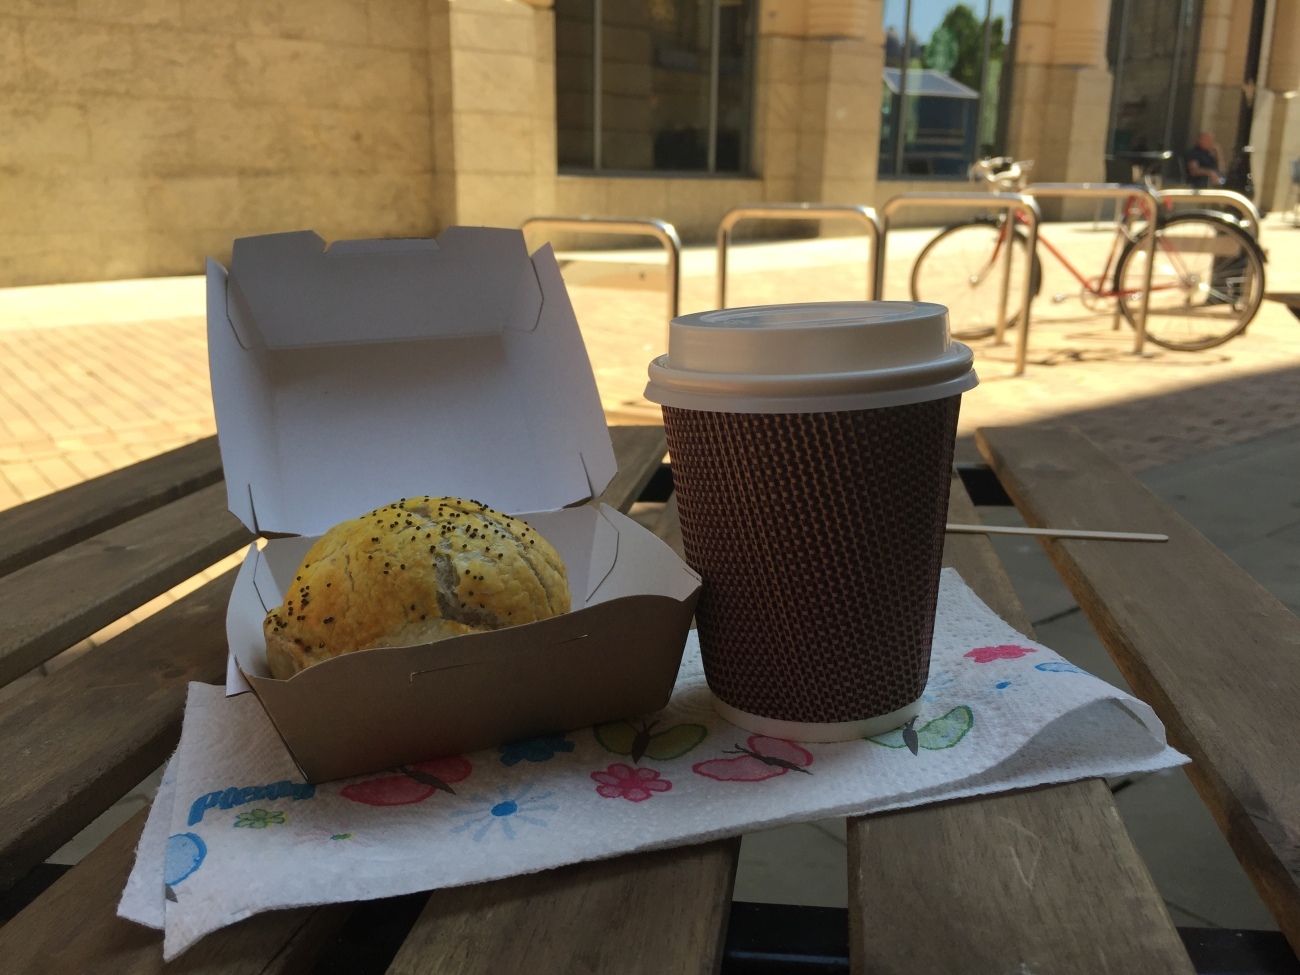 Flat White and Potato Bomb